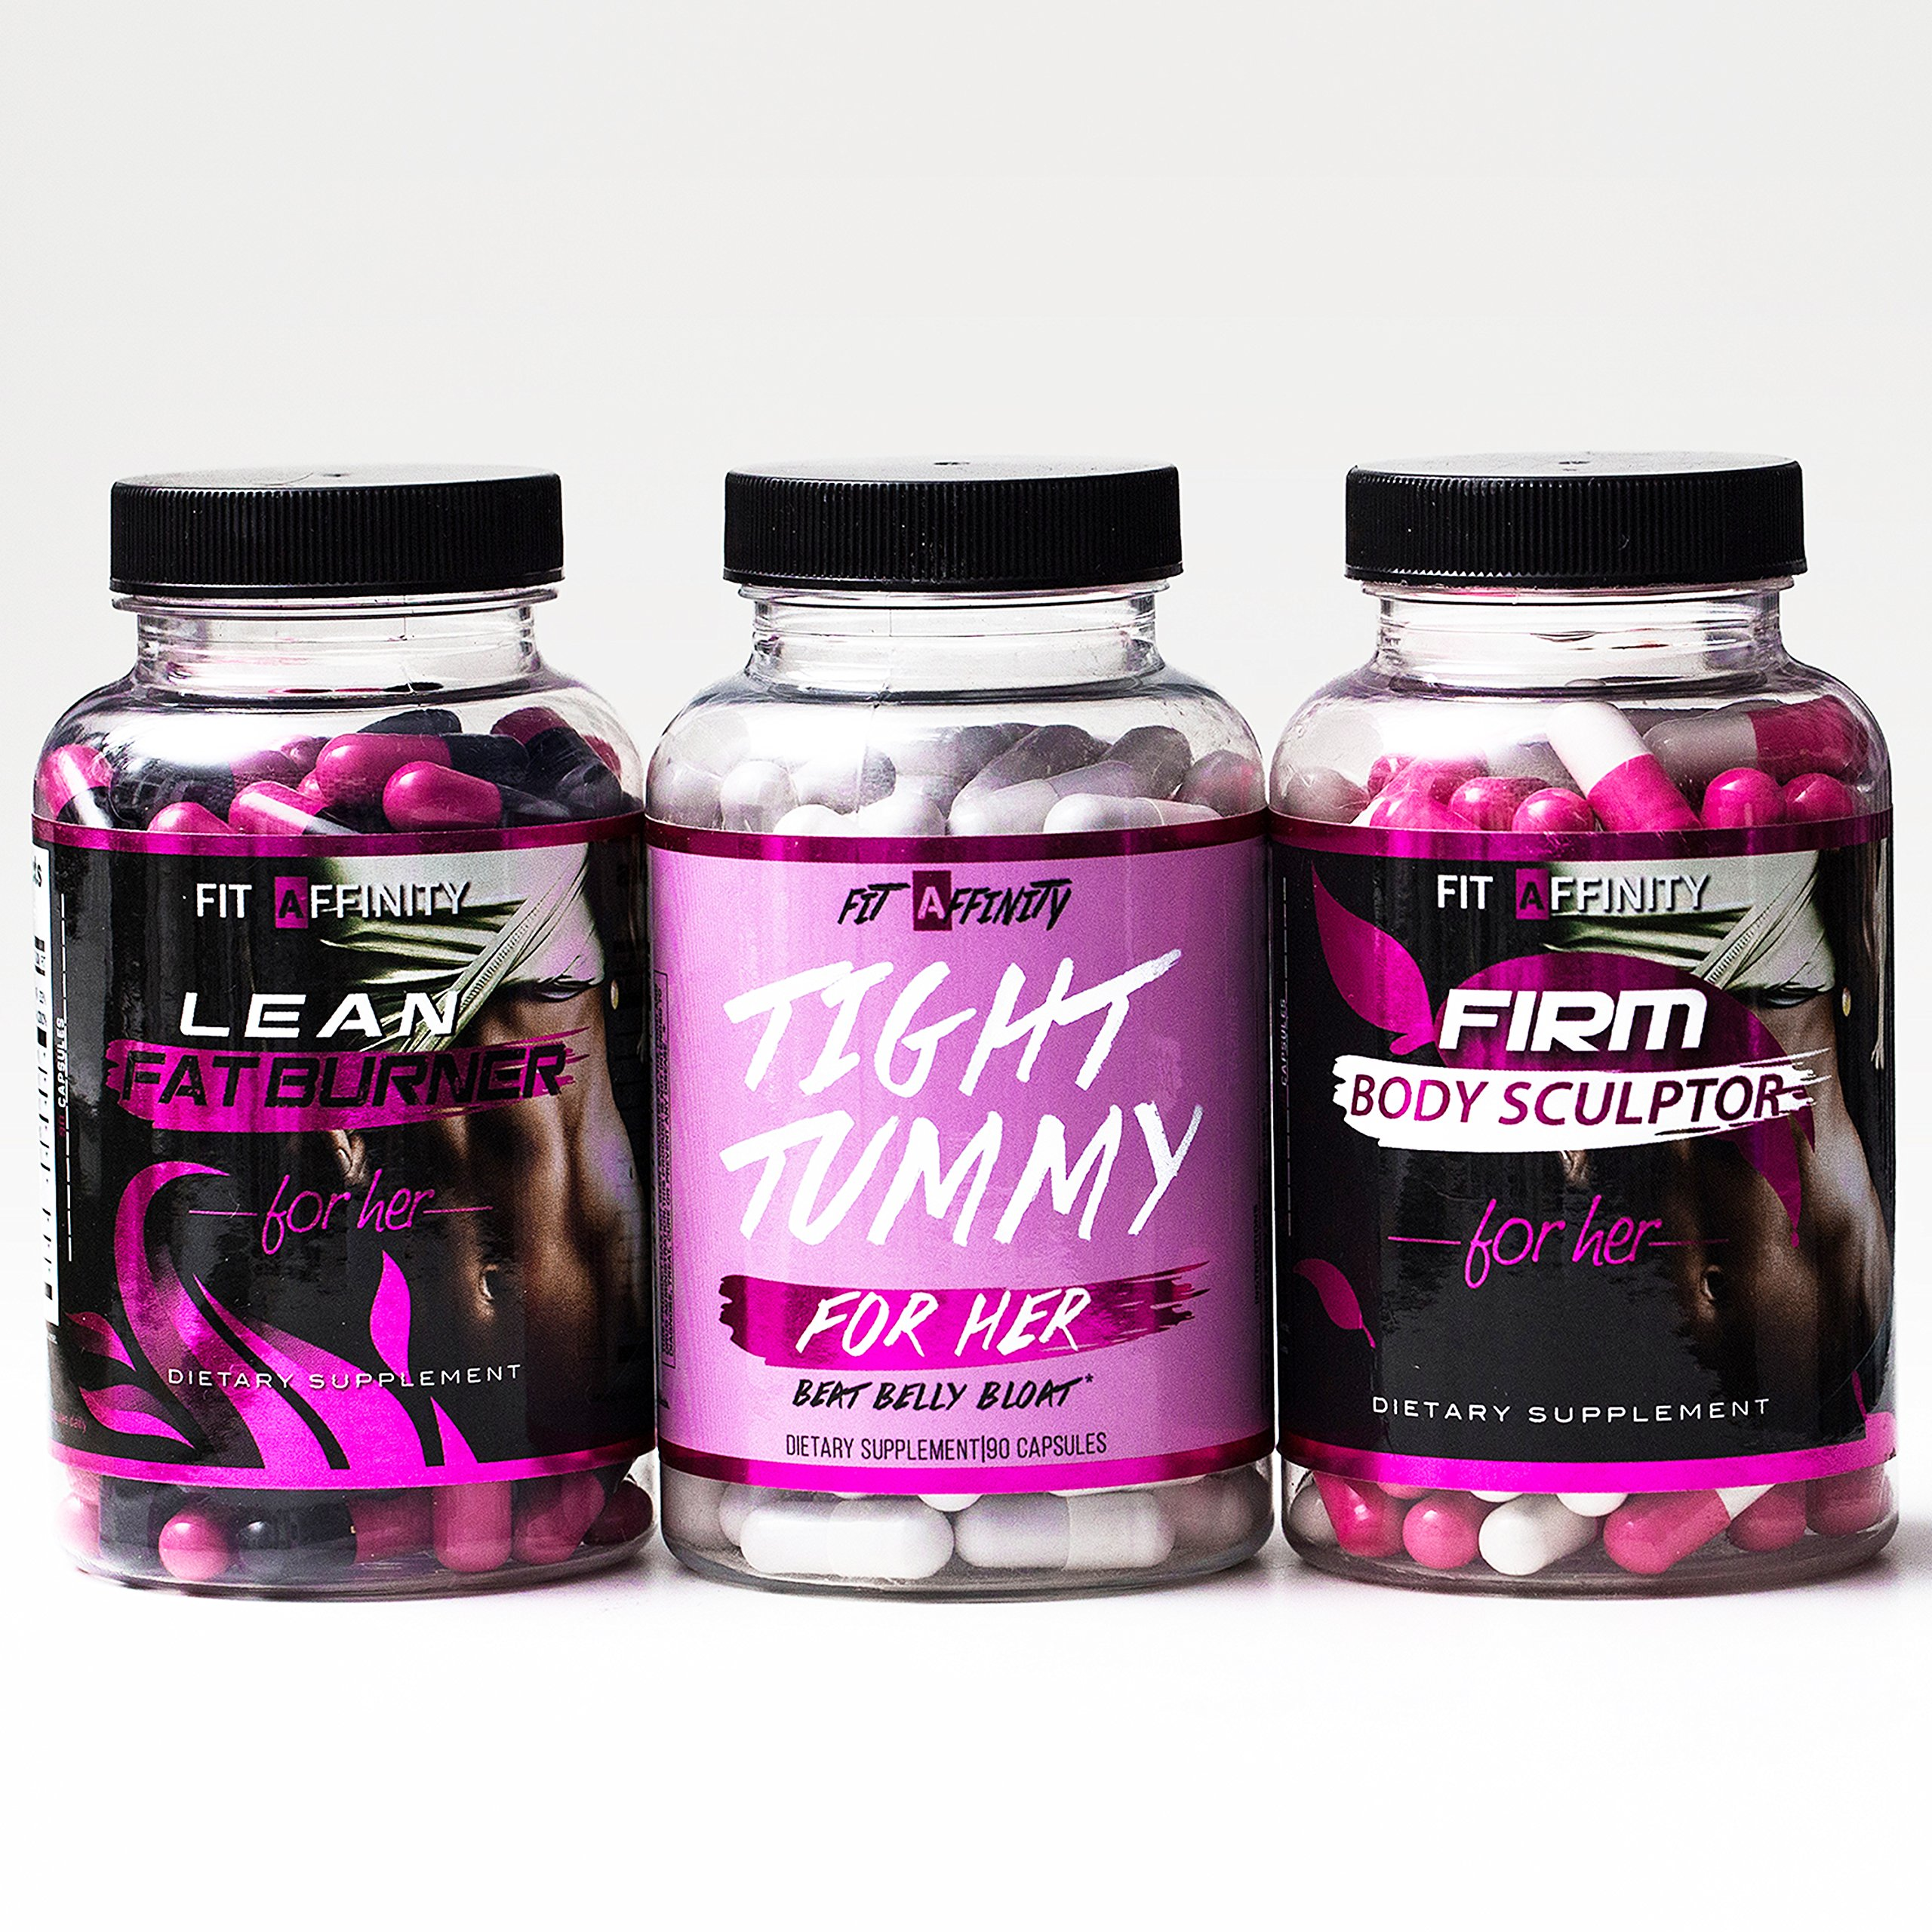 Fit Affinity - Weight Loss Bundle - Lean Fat Burner, Tight Tummy, Firm Body Sculptor